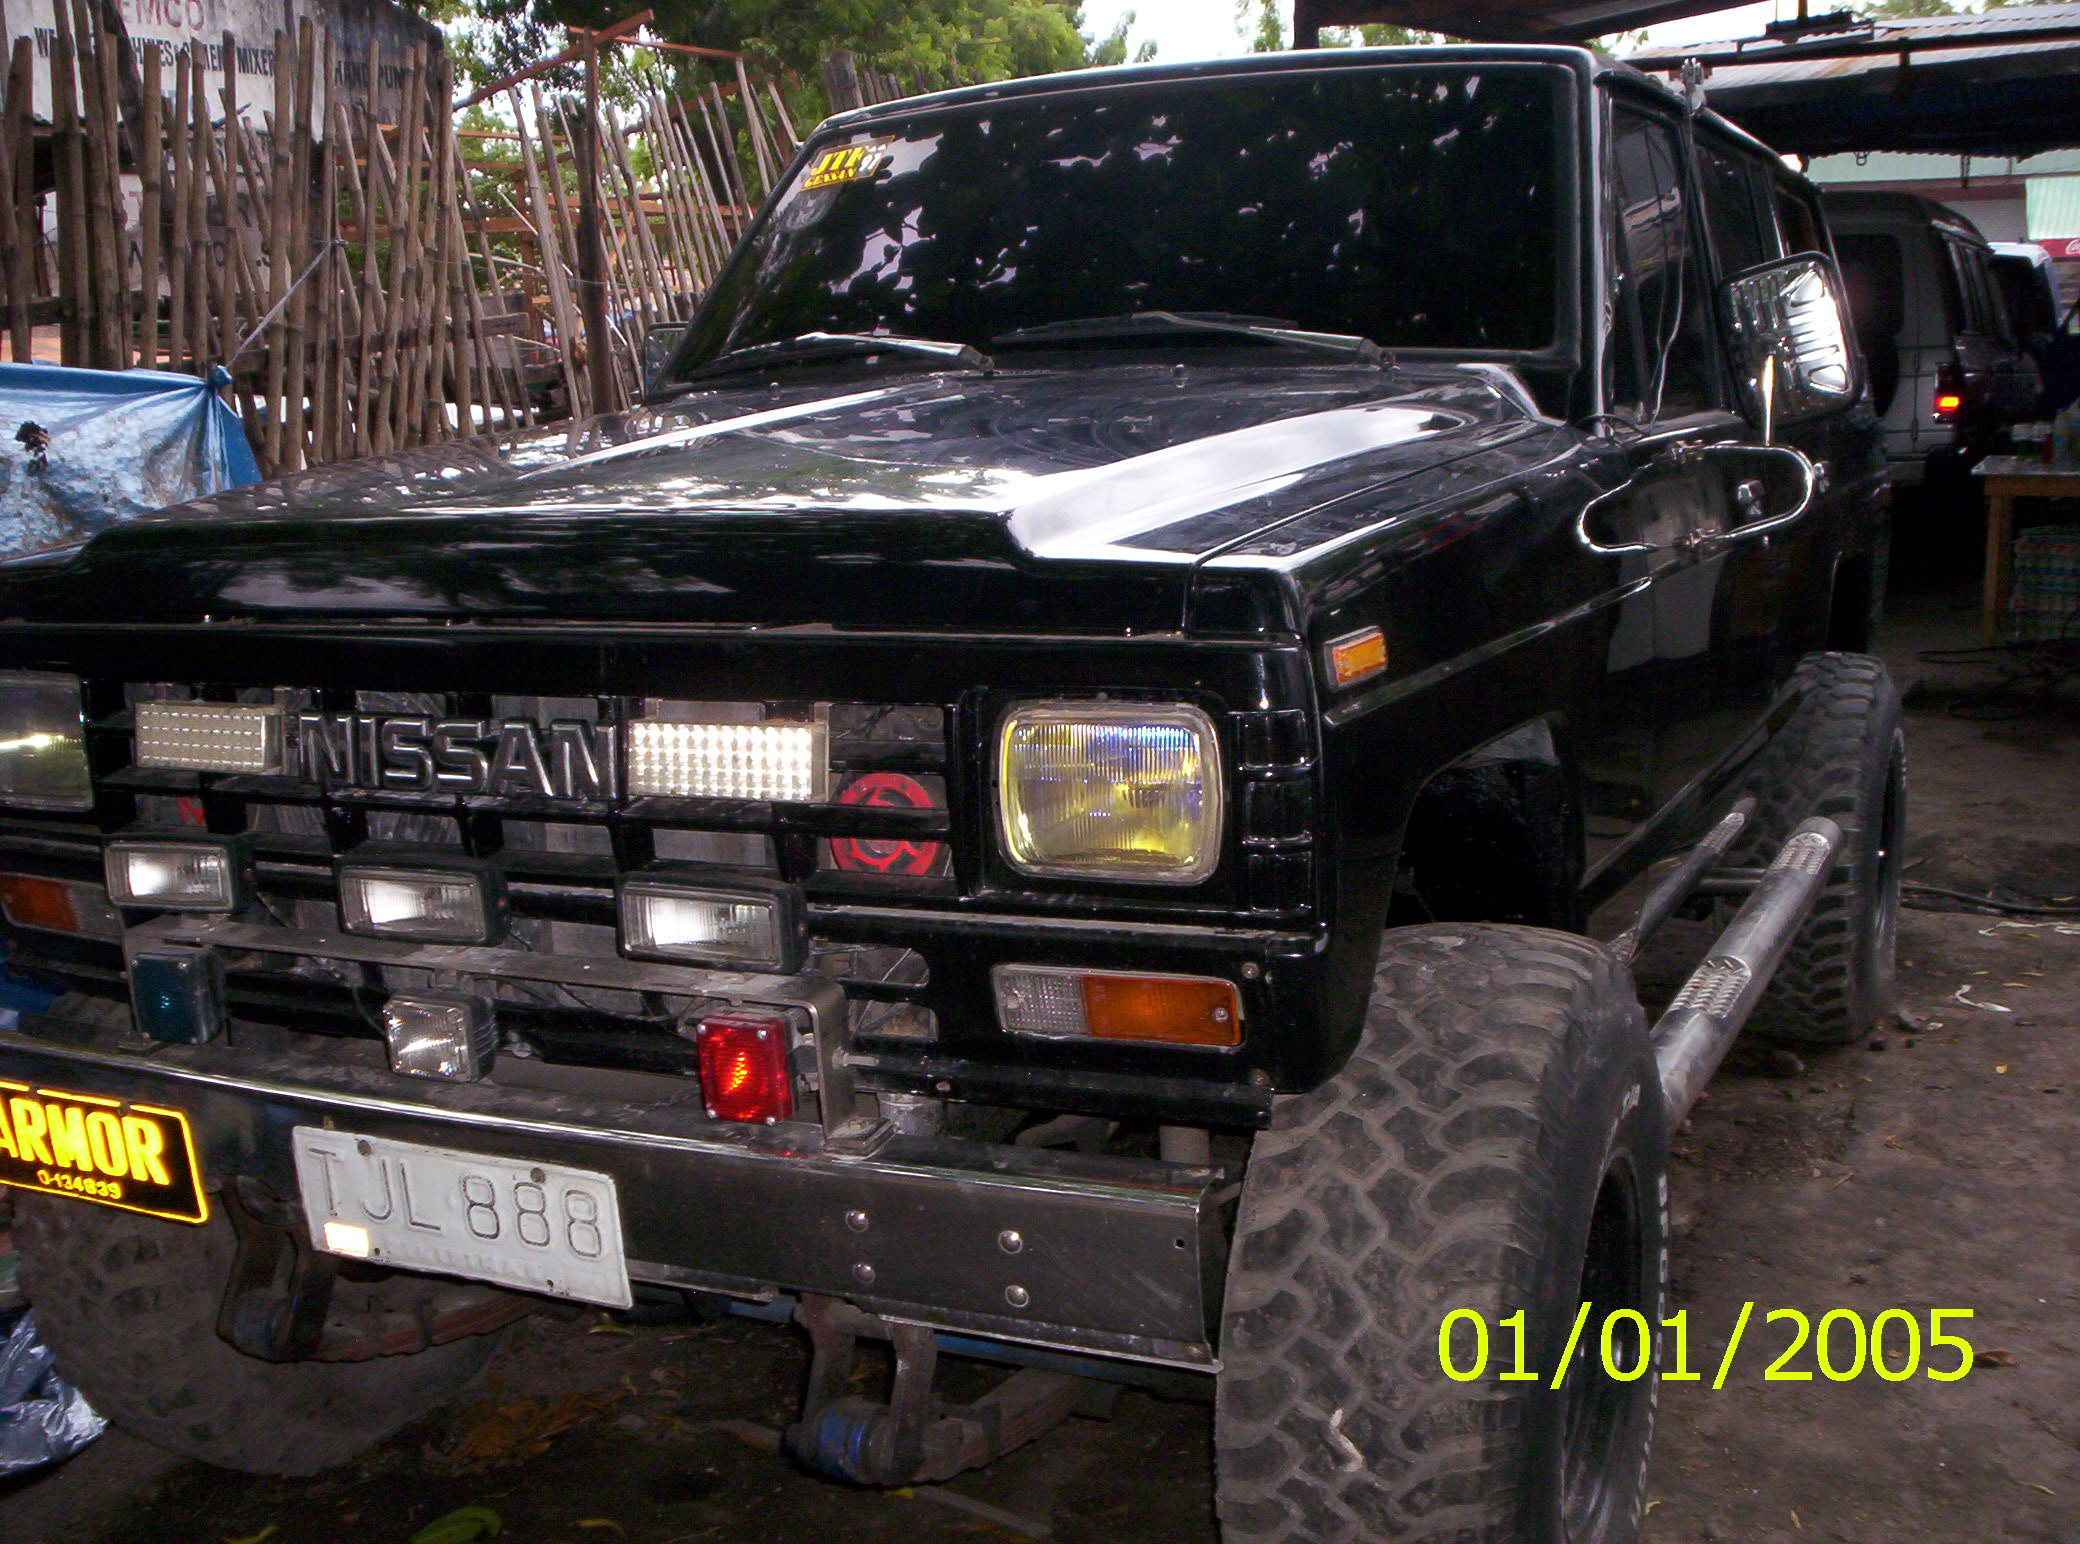 Photos Datsun Patrol Station Wagon 160 1980 83 95825 together with Nissan Patrol likewise VkXj8VTx0MY further Interieur photo Nissan X Trail image likewise . on nissan patrol